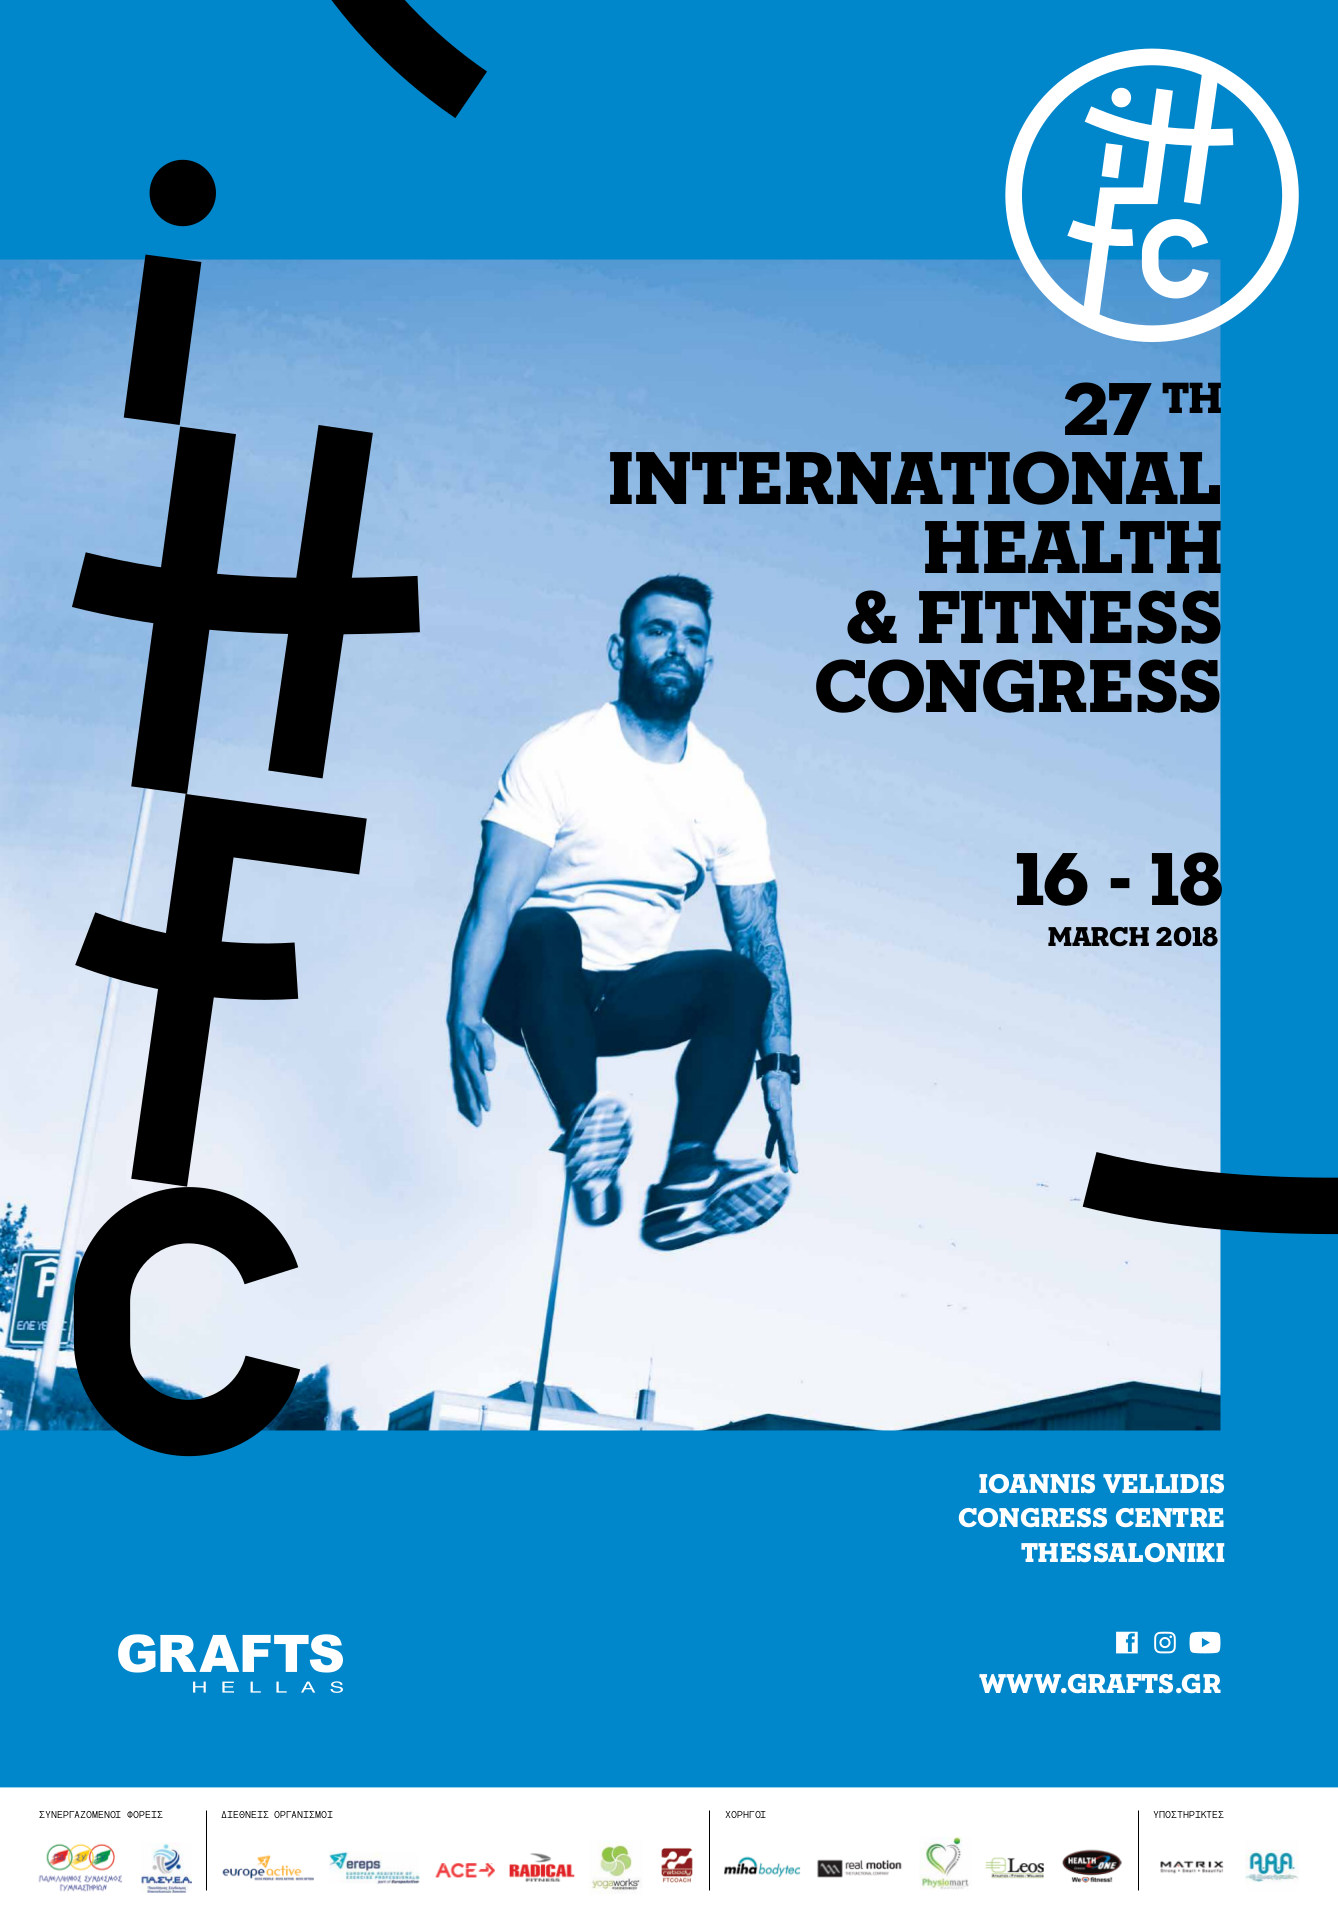 27th International Health & Fitness Congress by GRAFTS Hellas poster